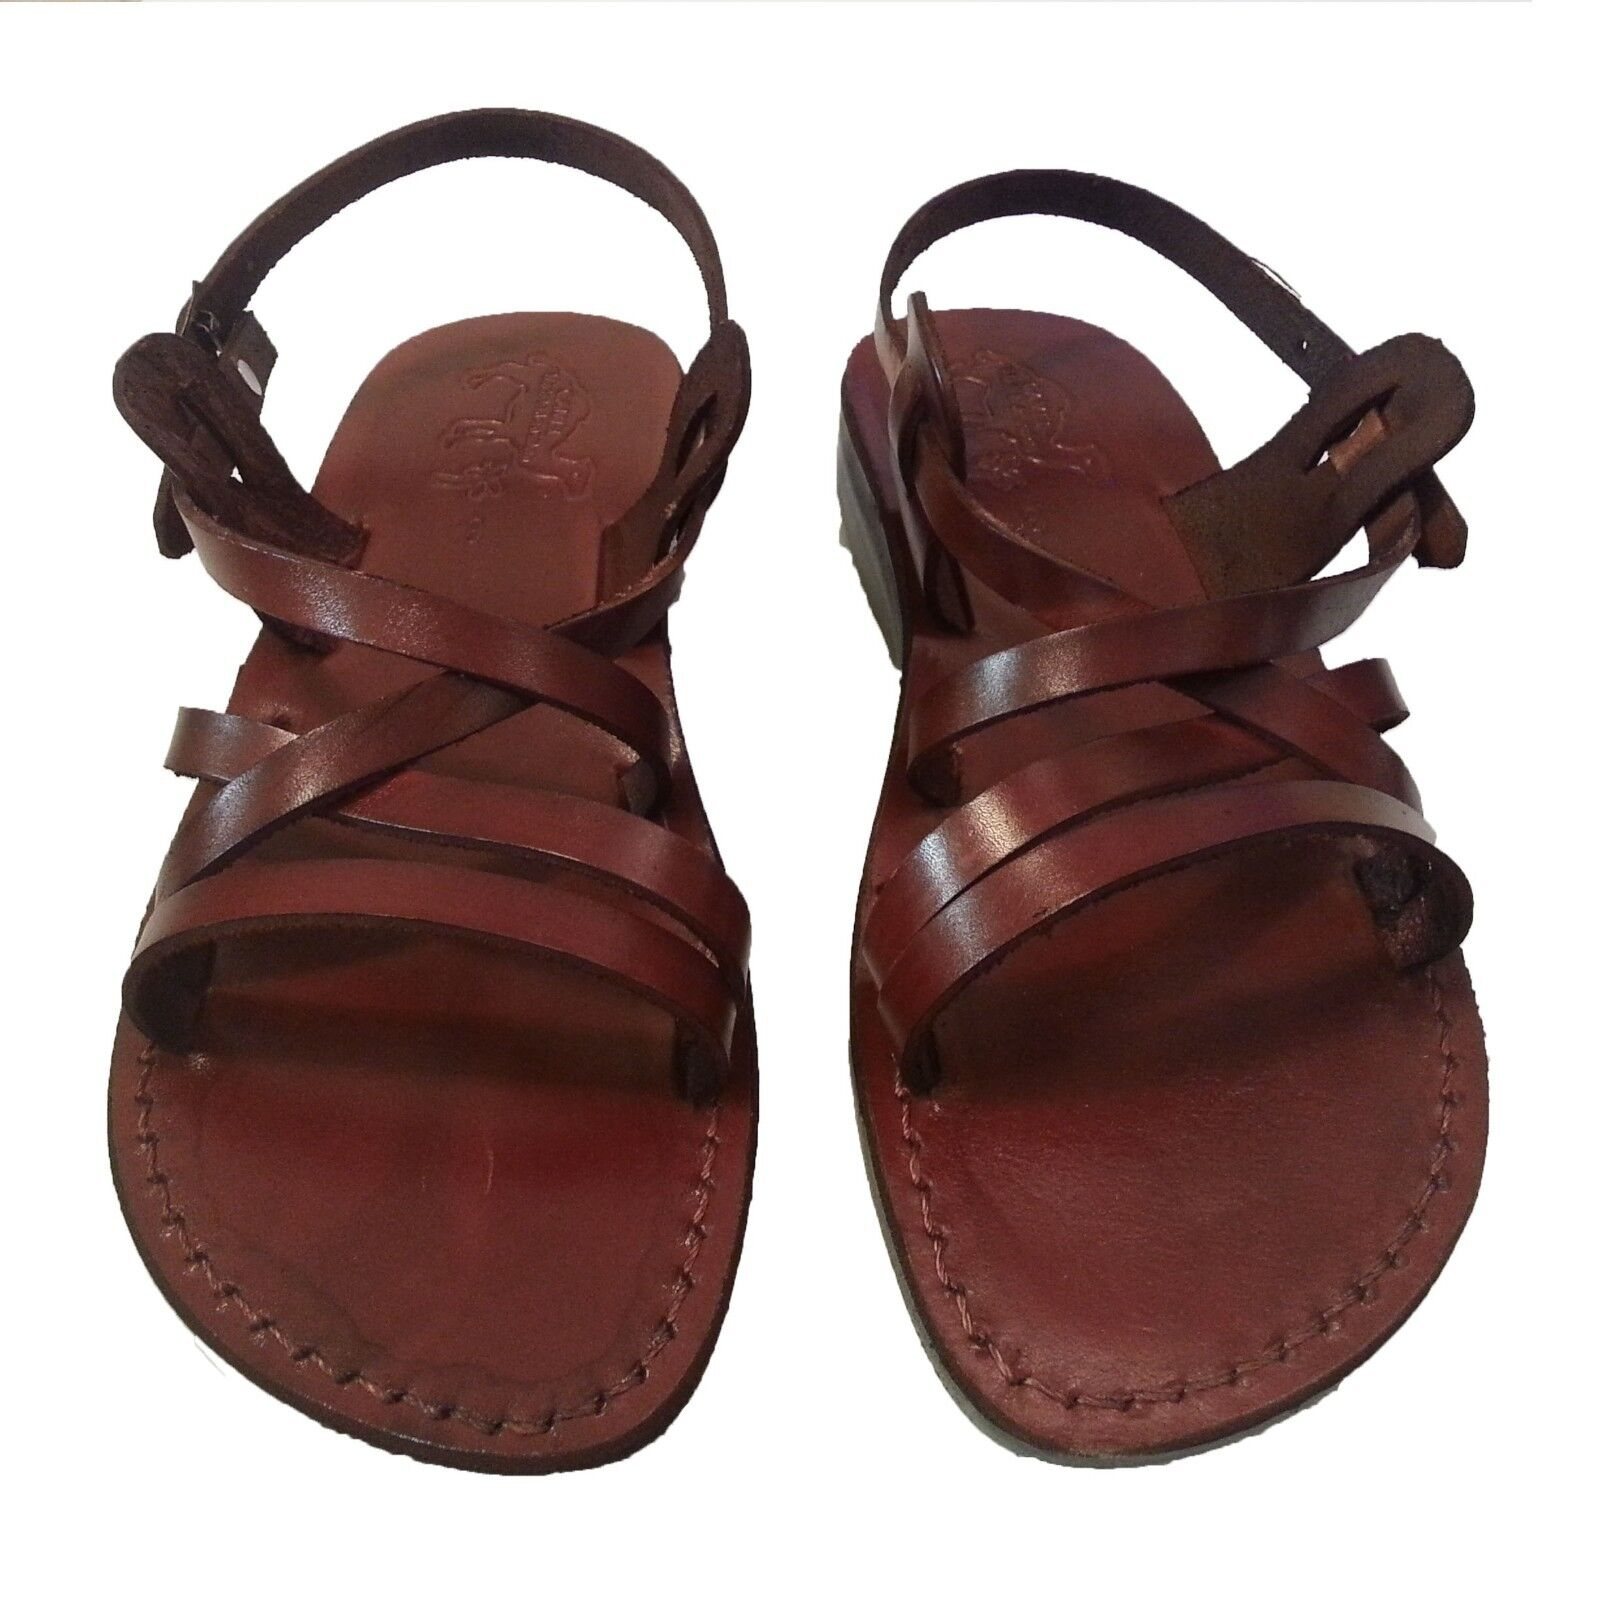 650d960709083 Women s Brown Leather Biblical Jesus Sandals Slip On shoes Size US 5-10 EU  35